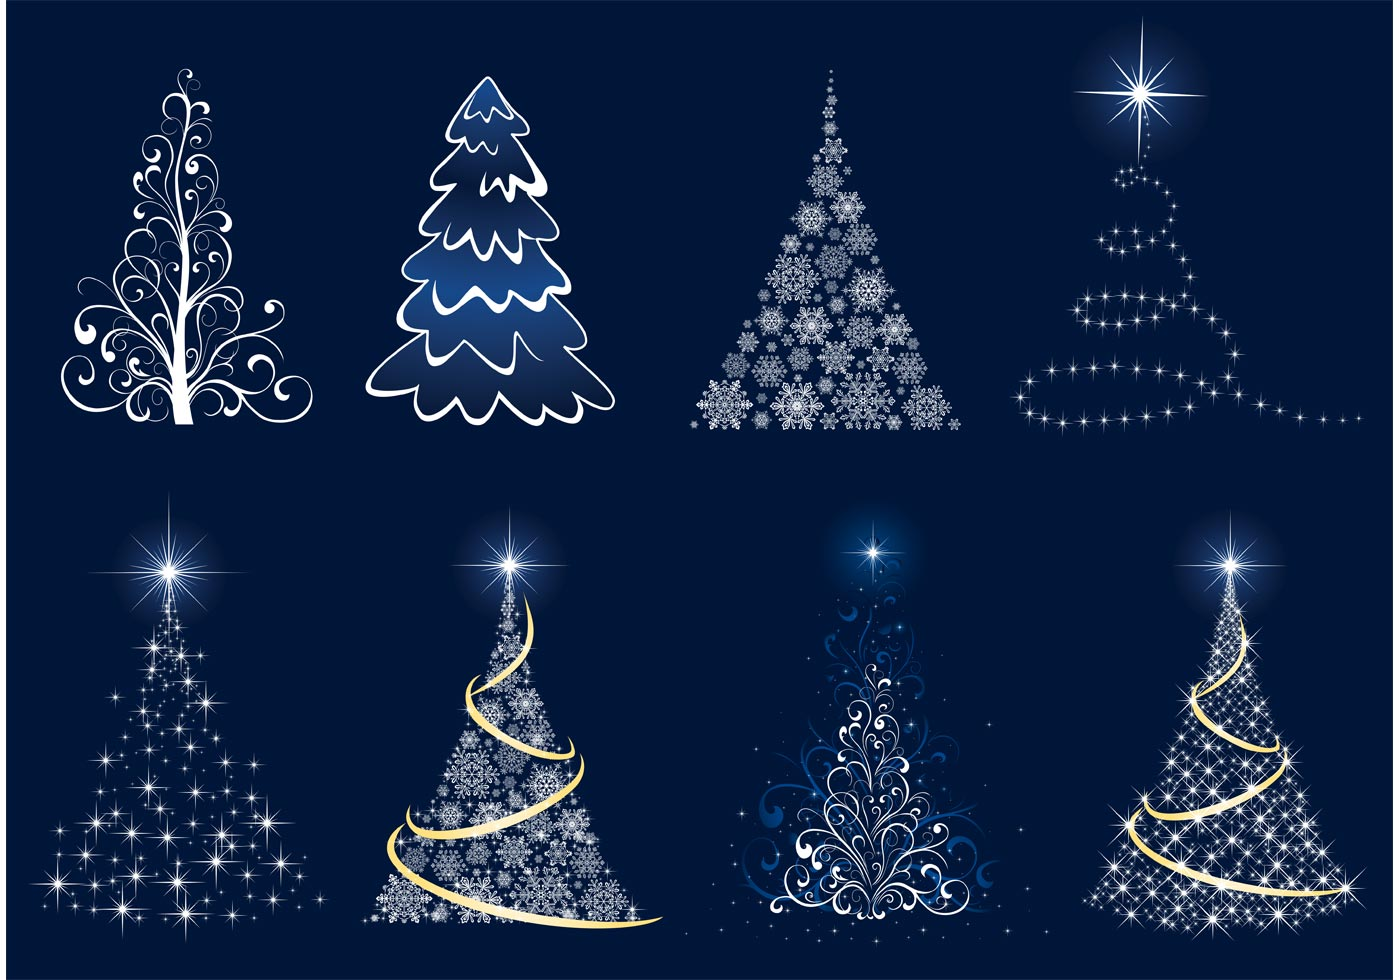 Christmas Tree Vector Graphics - Download Free Vector Art, Stock Graphics & Images